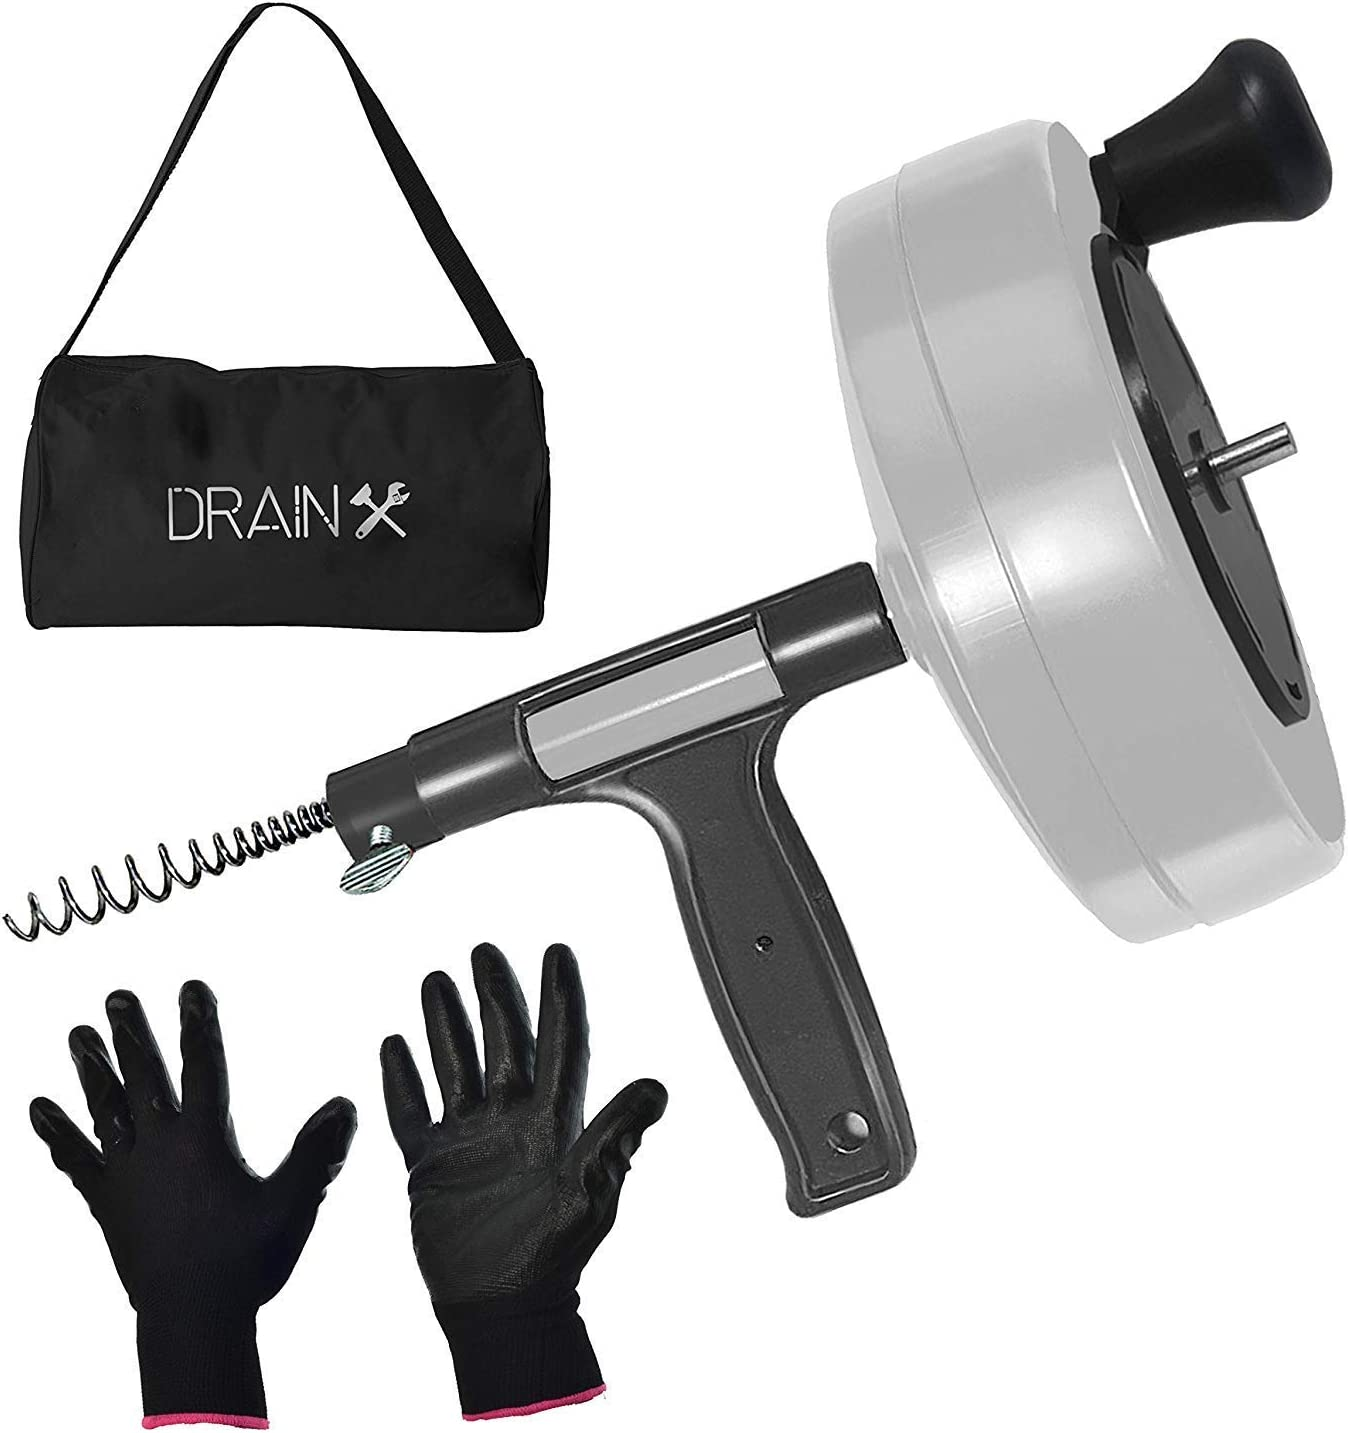 Drainx Power Pro 50-FT Steel Drum Auger Plumbing Snake with Drill Adapter | Heavy Duty Drain Snake Cable with Work Gloves and Storage Bag- White.